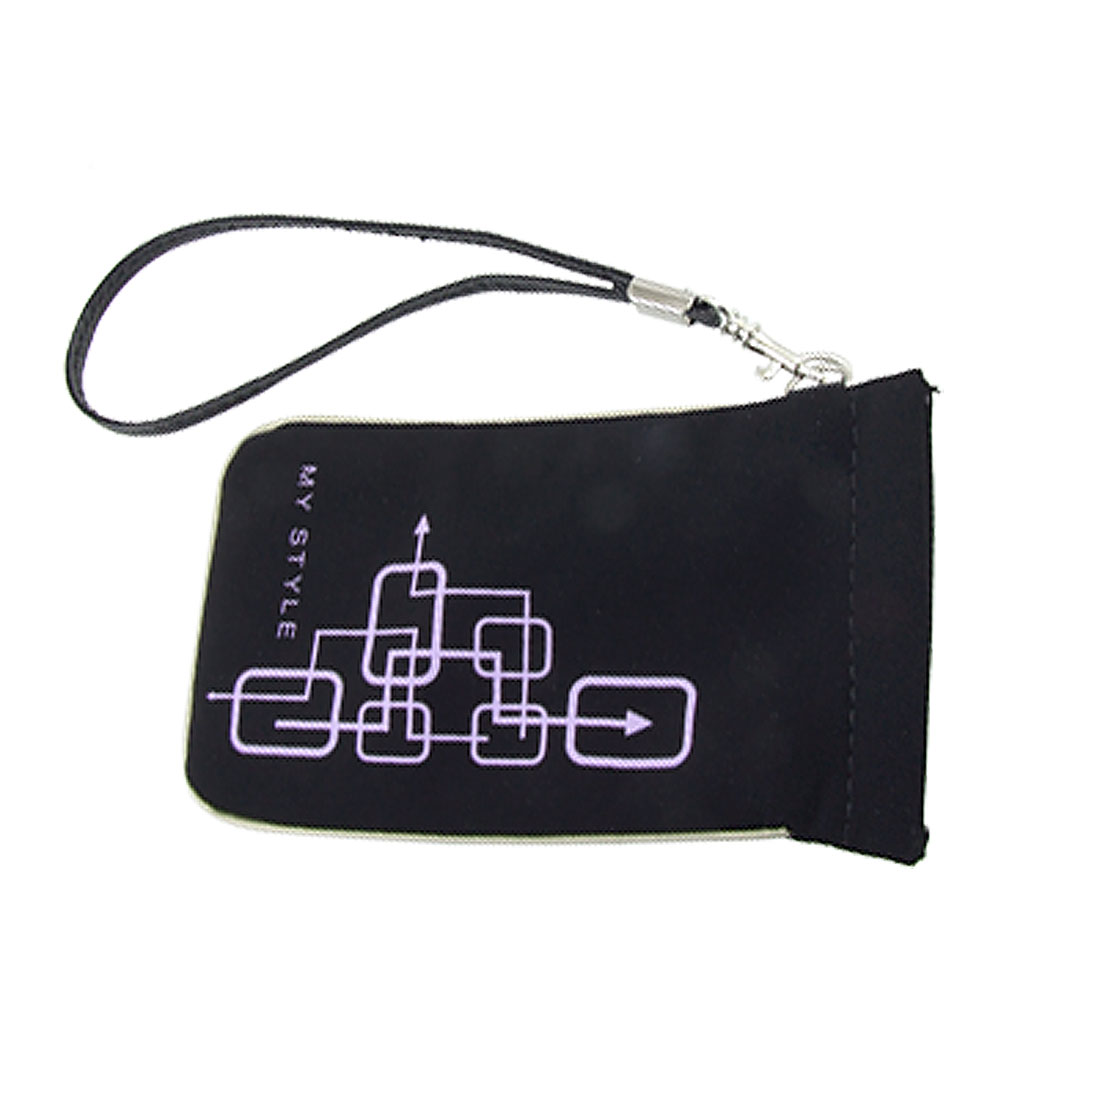 Purple Print Black PVC Faux Leather Pouch for Mobile Phone